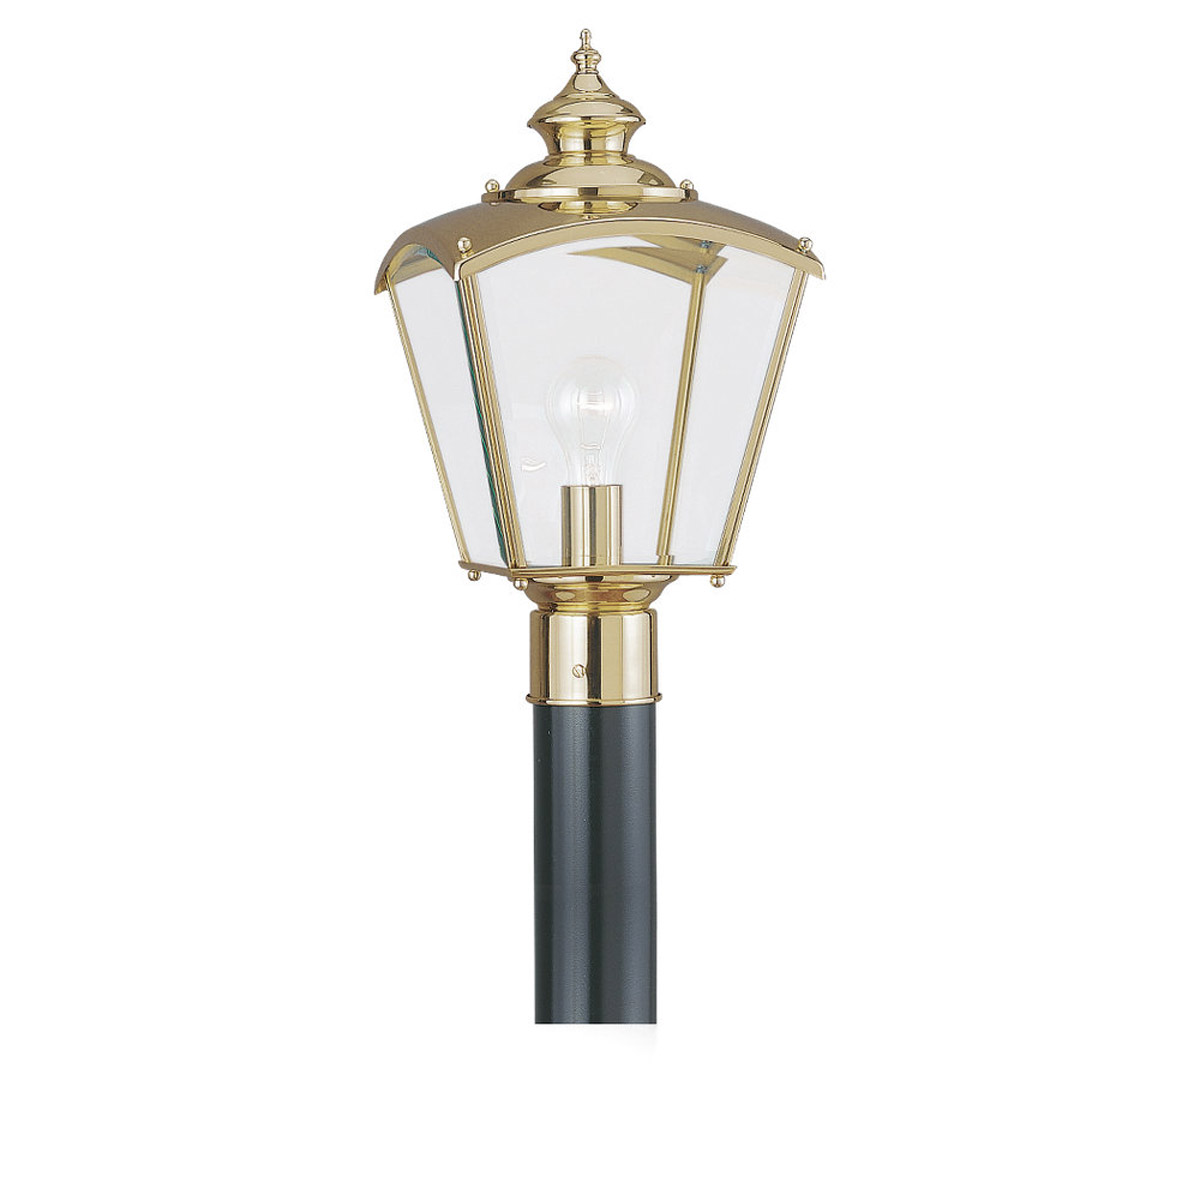 Sea Gull Lighting New Castle 1 Light Outdoor Post Lantern in Polished Brass 8202-02 photo